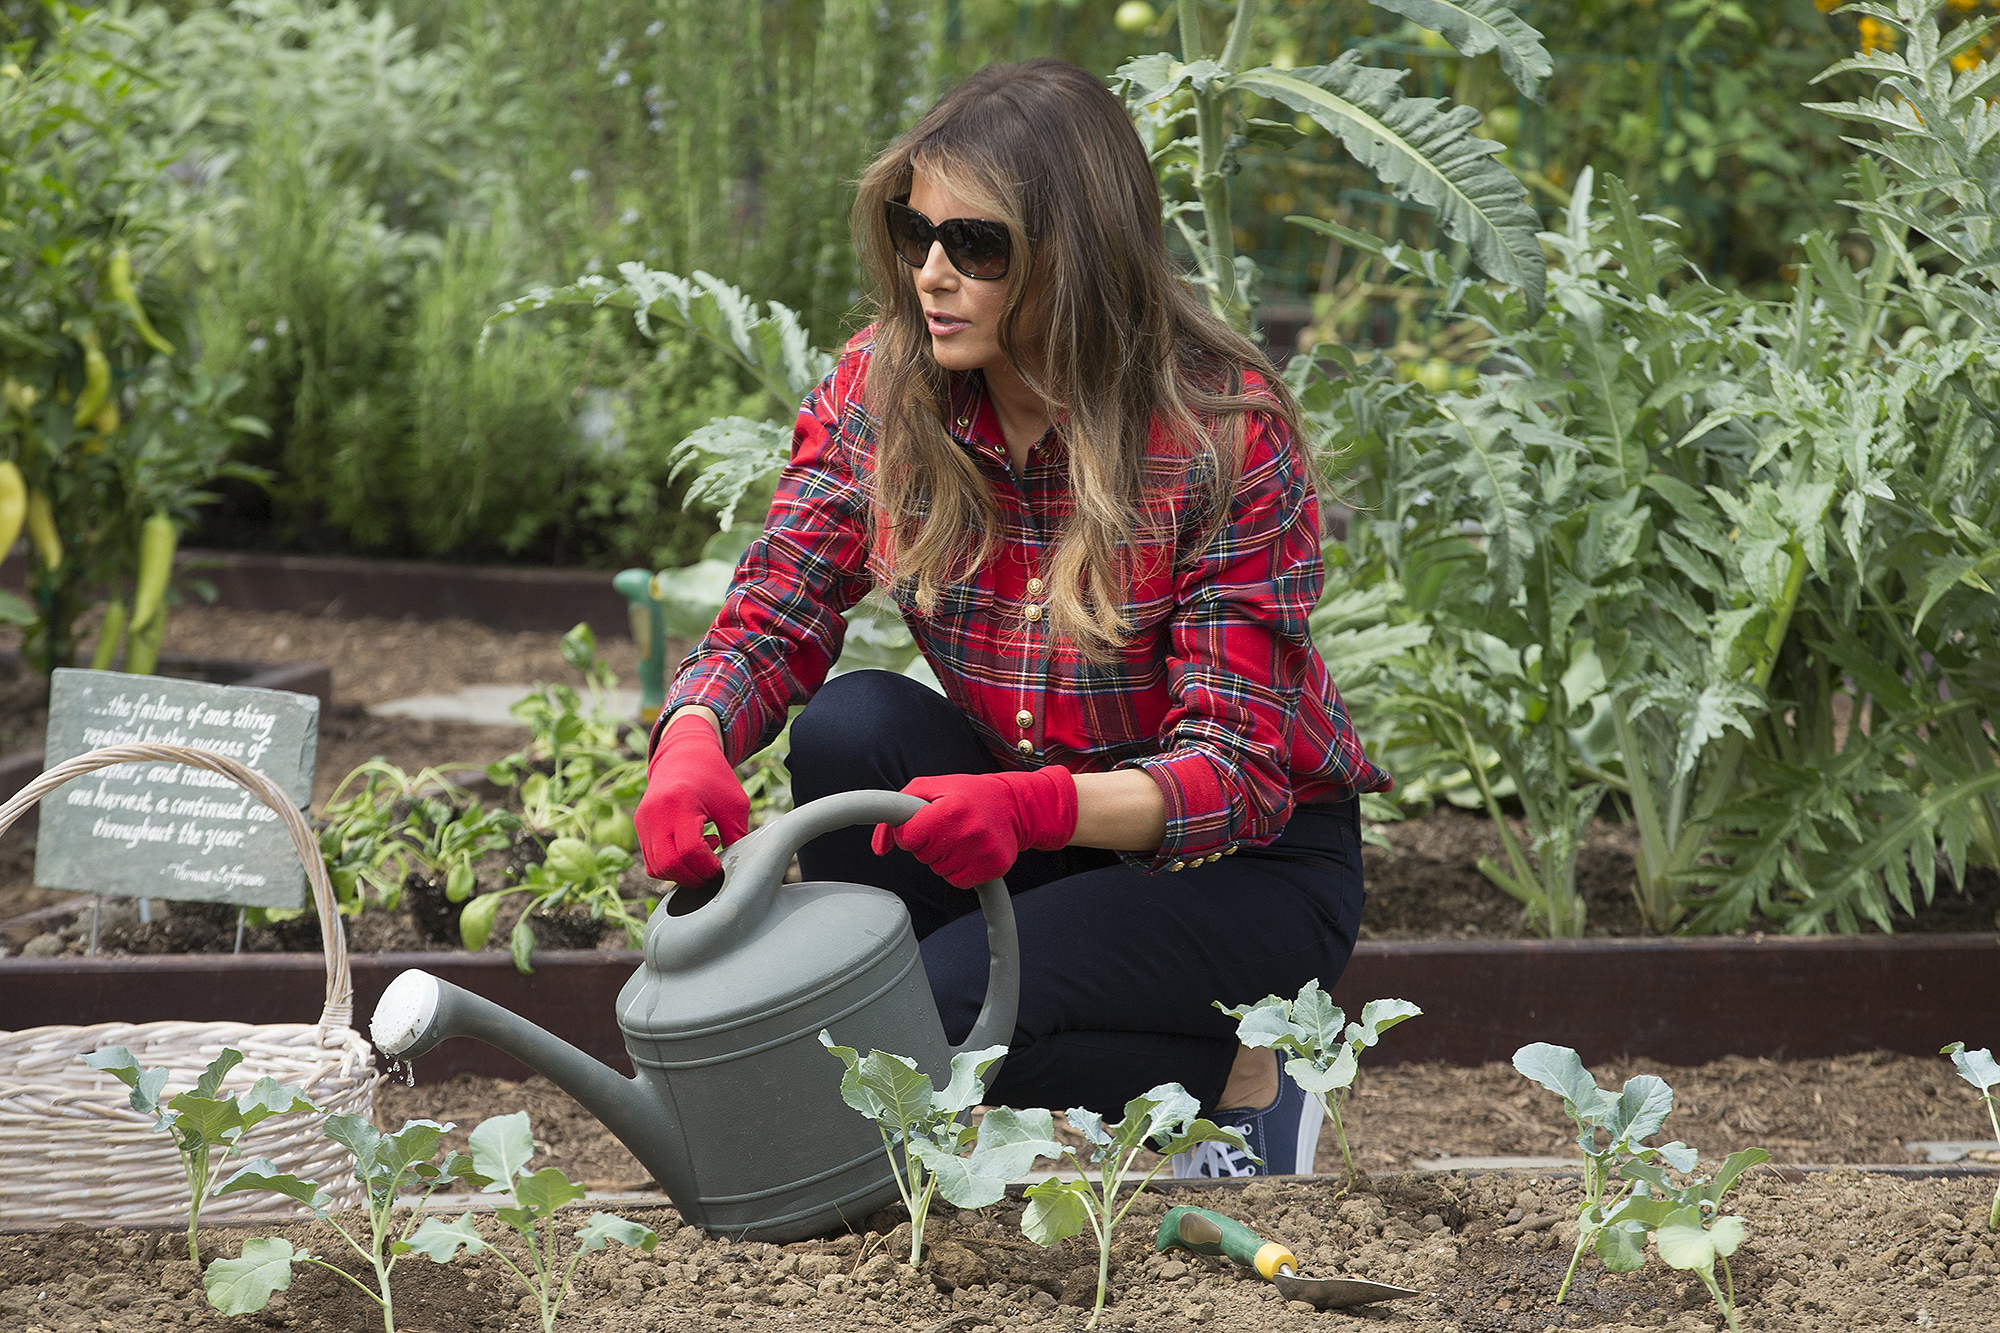 US First Lady Melania Trump harvests and plants vegetables with students from the Boys and Girls Club of Washington DC